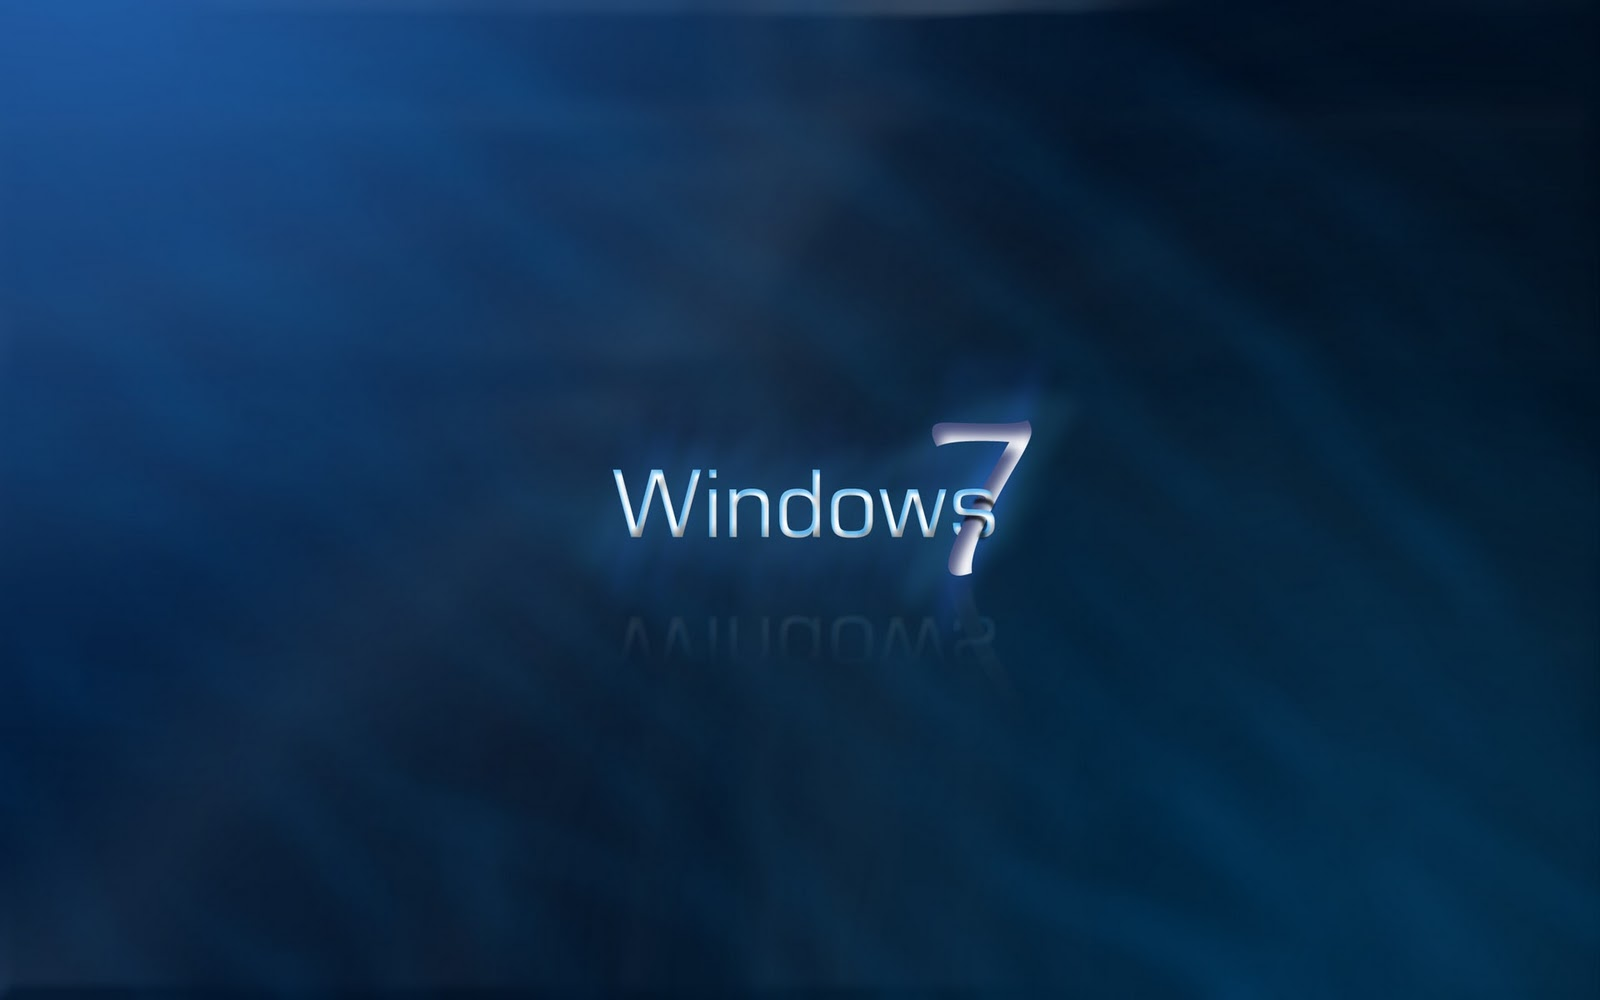 windows 7 achtergronden hd wallpapers ForWindows 7 Bureaublad